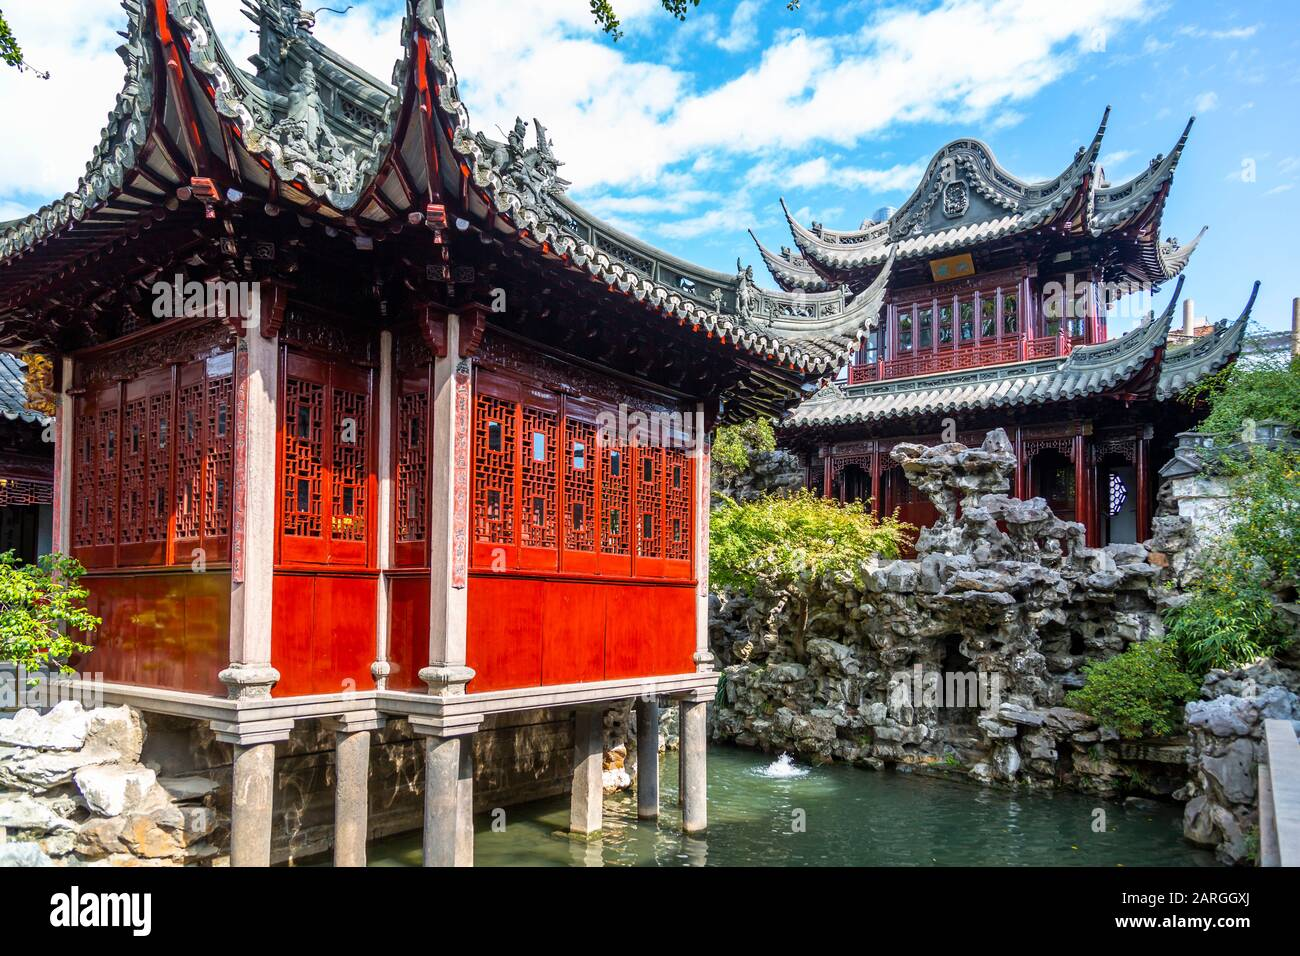 View of traditional Chinese architecture in Yu Garden, Shanghai, China, Asia Stock Photo